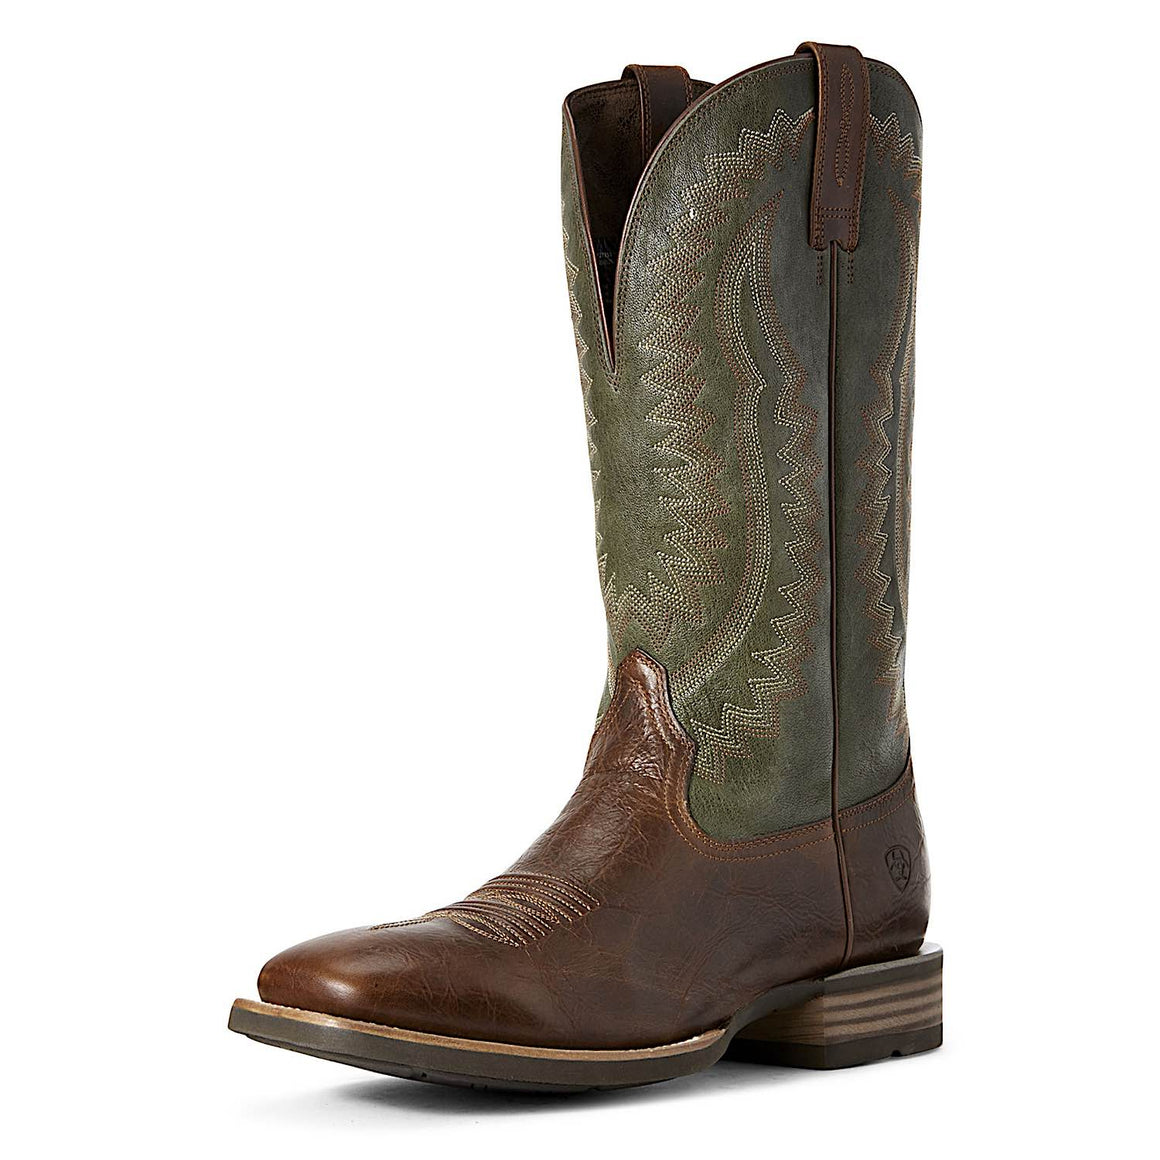 ea16bf2c90a Buy Ariat Men's Western Boots - Men's Heritage Ropers & More - The ...